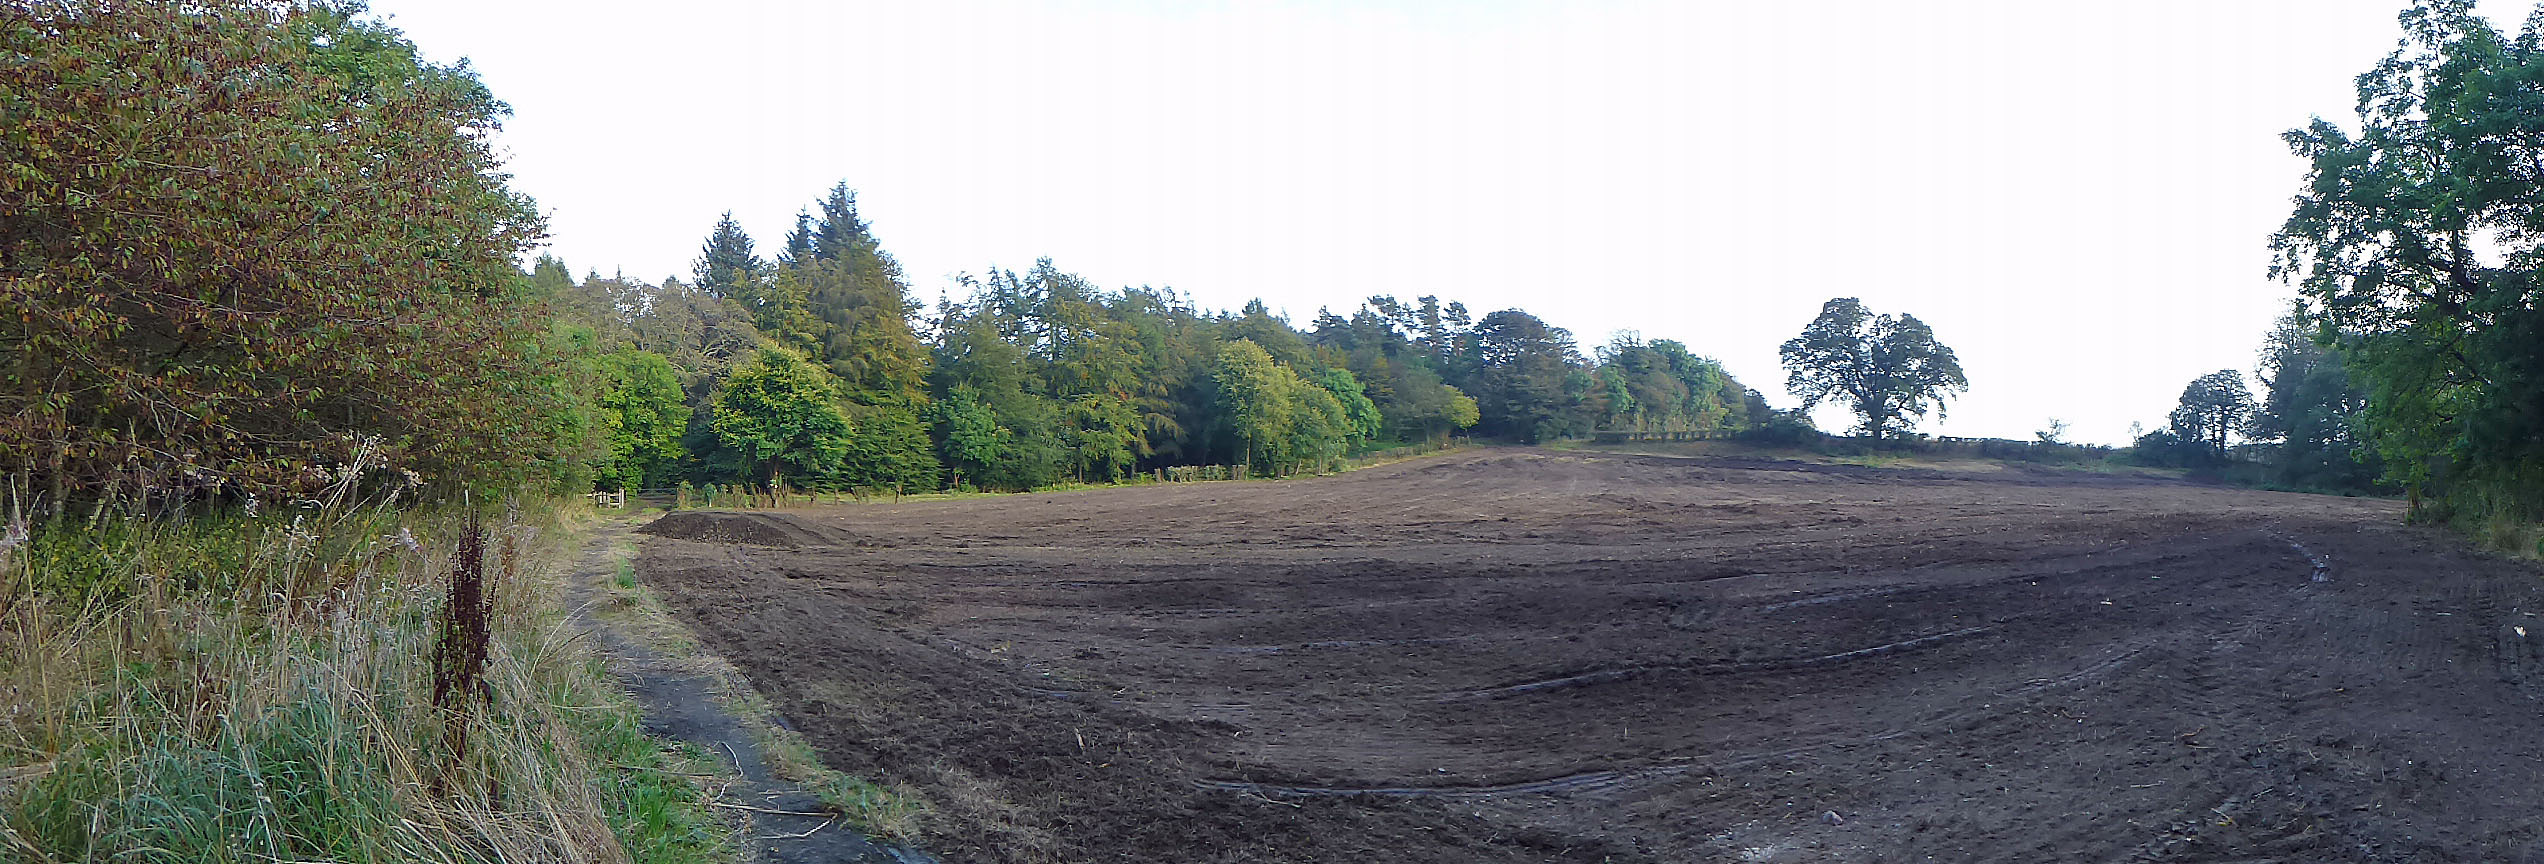 After the groundworks had been completed